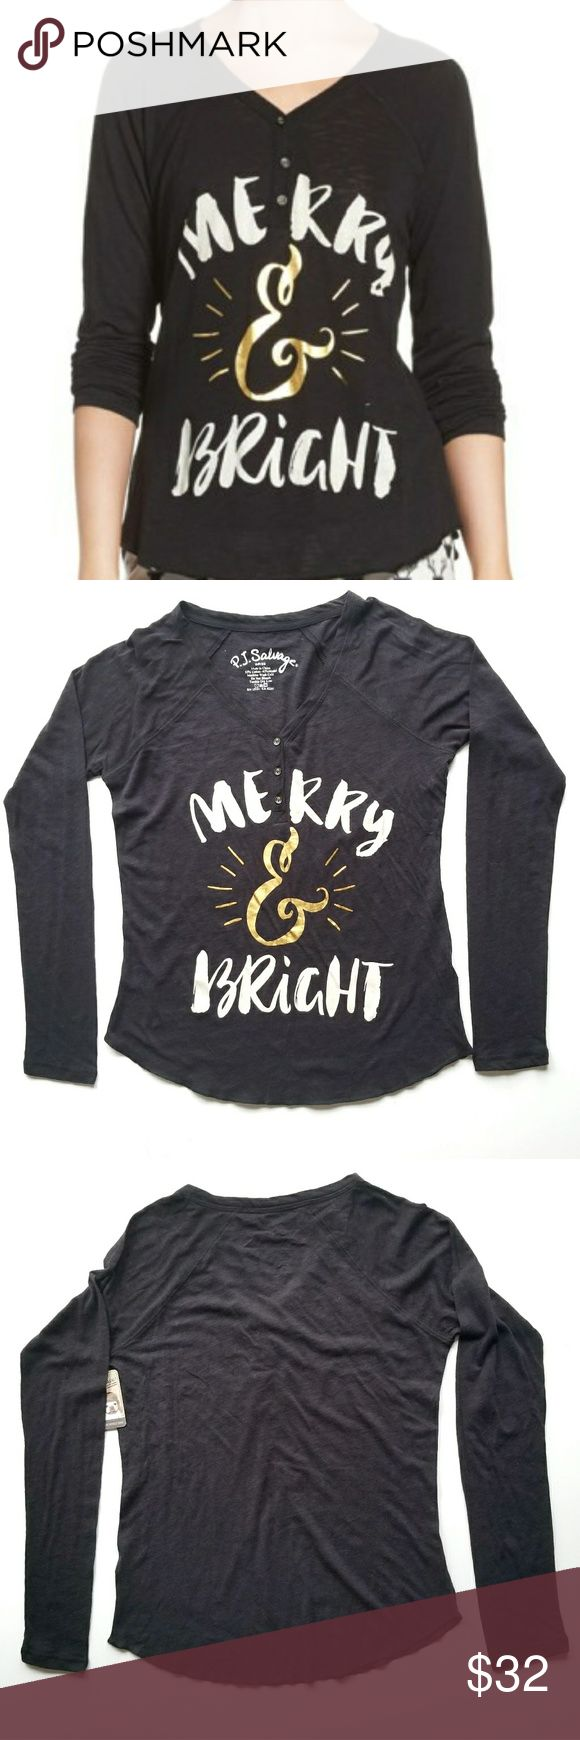 """PJ Salvage Holiday Edition """"Merry & Bright"""" Henley PJ Salvage  Holiday Collection Long Sleeve Printed Henley NWT!  Cozy & ultra soft long sleeve Henley. Black and printed with """"Merry & Bright"""" in white & gold on the front. I have multiple size Small available. These run a little big (meant to be cozy) so will fit a size M comfortably.   Bust: 21"""" Waist: 19"""" Length: 28""""  Save 30% on any bundle of two or more items plus FREE Shipping on all bundles! Check out my closet - most of the items I…"""